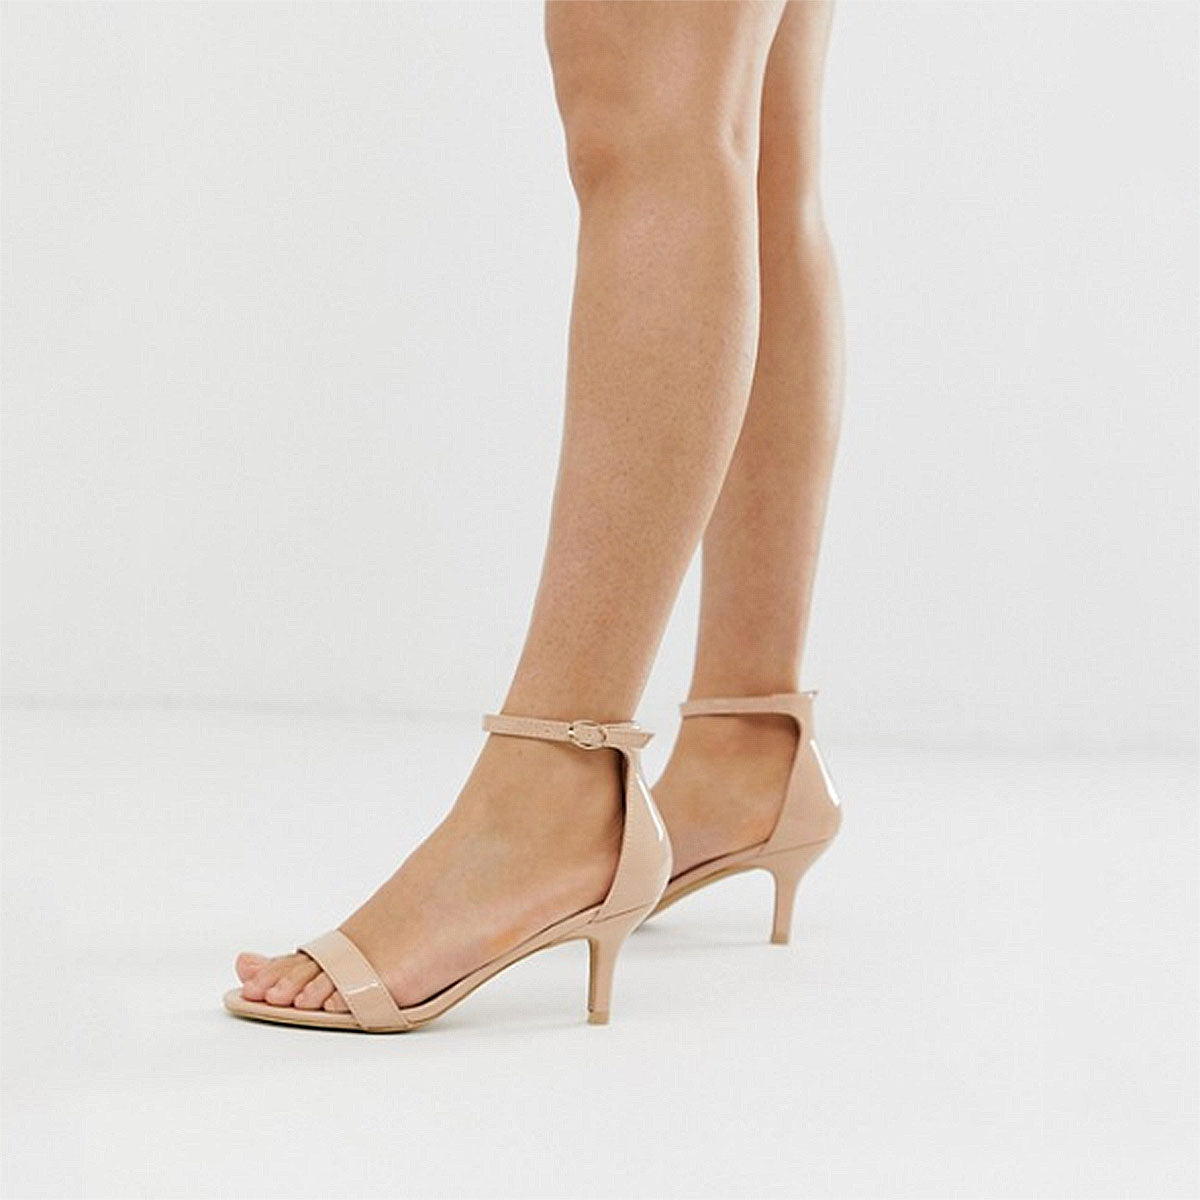 world-wide selection of competitive price cheap price The Karina Beige Nude Kitten Heel Sandals